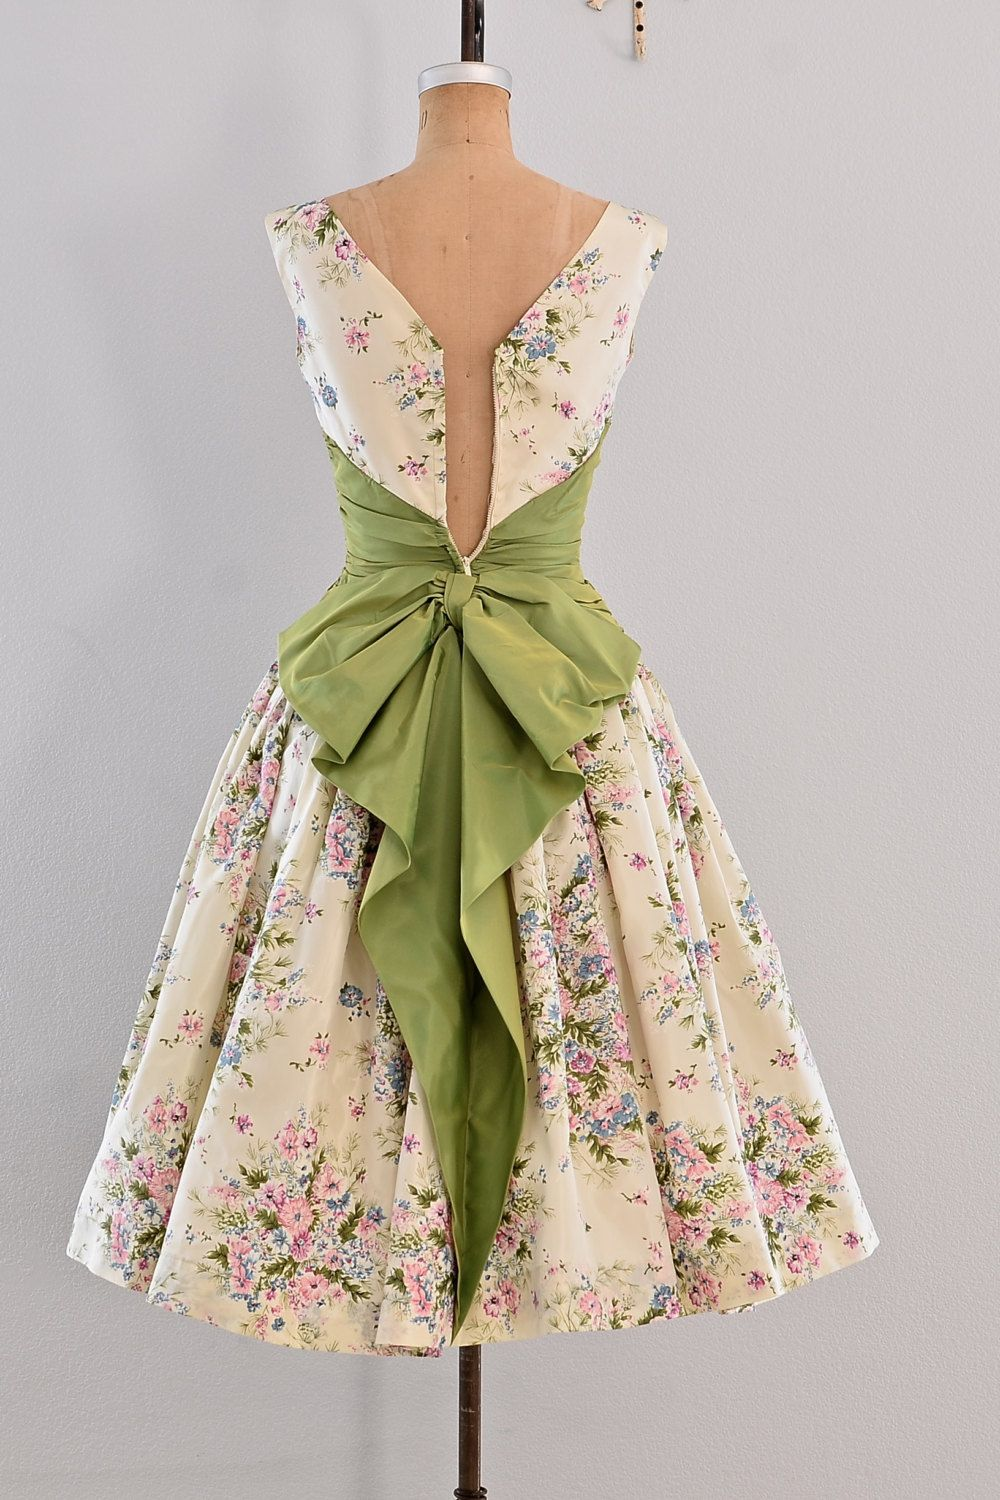 The dress designs - Lovely Design But It Certainly Is Telling When The Dress Is So Fitted That It